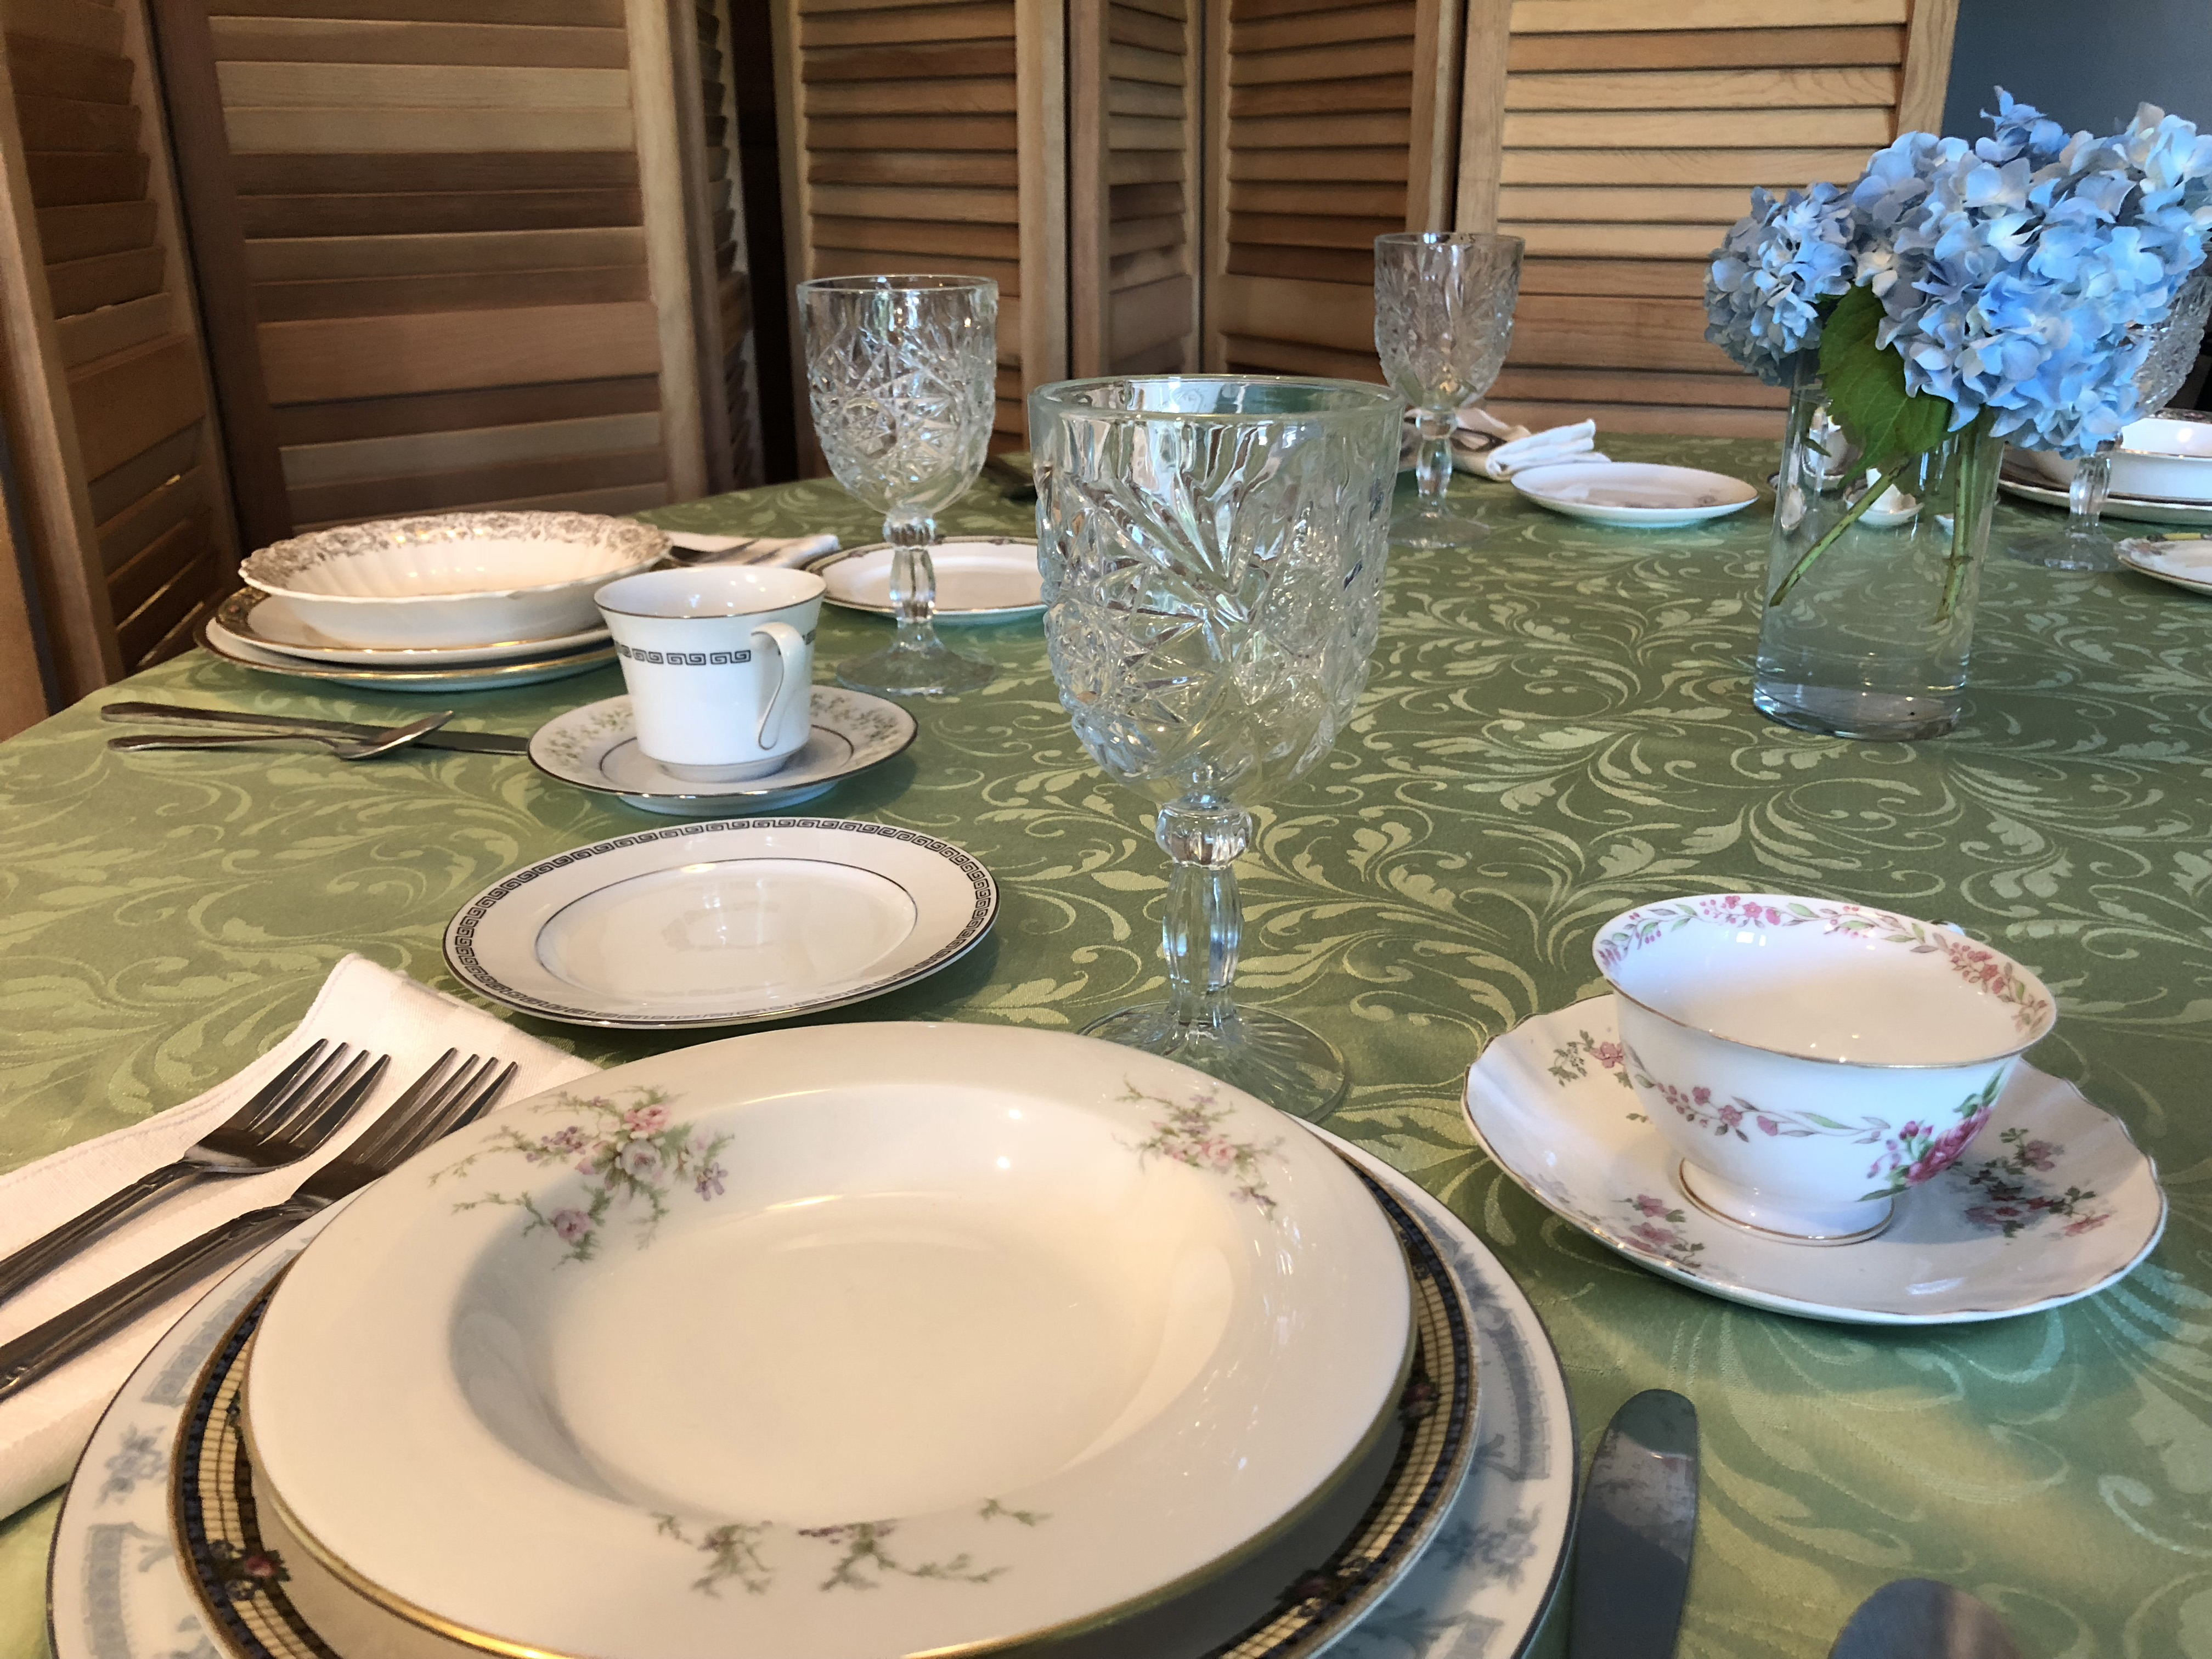 Mixed China - 11 Pieces, Service For 120